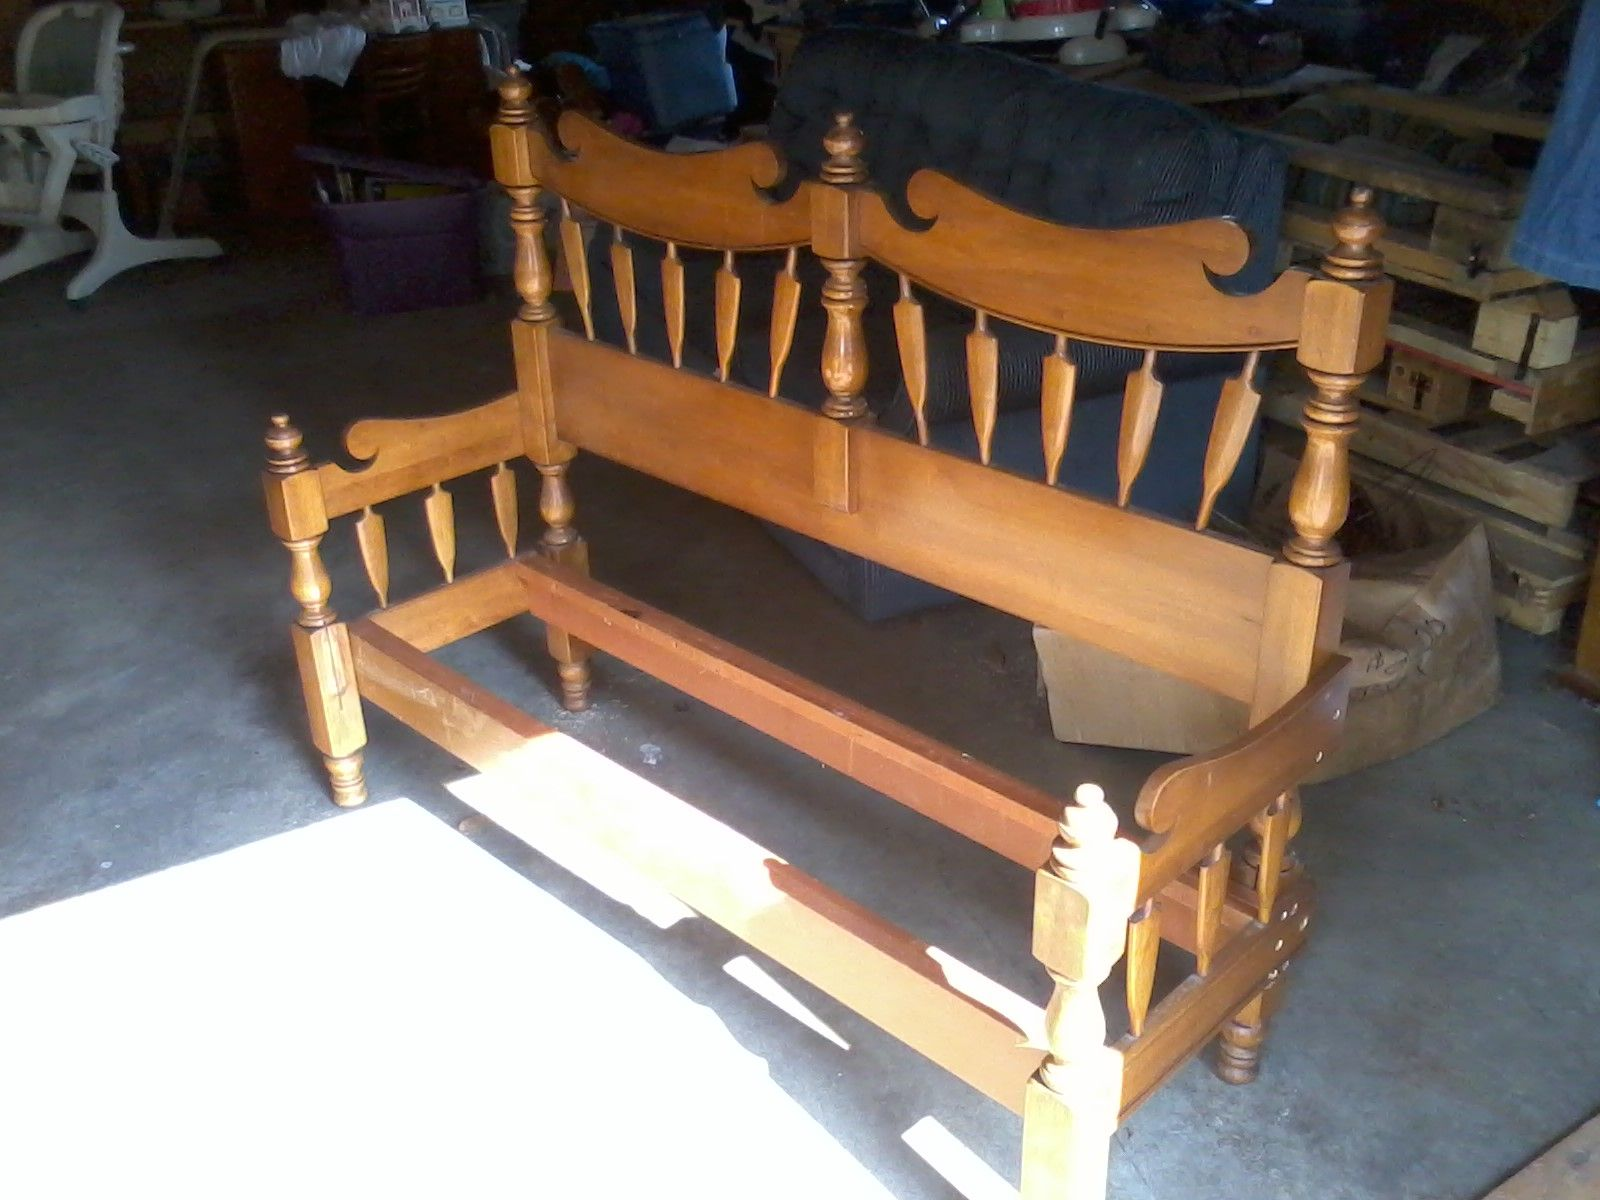 bench i made from a fullsize bed frame. going to paint it